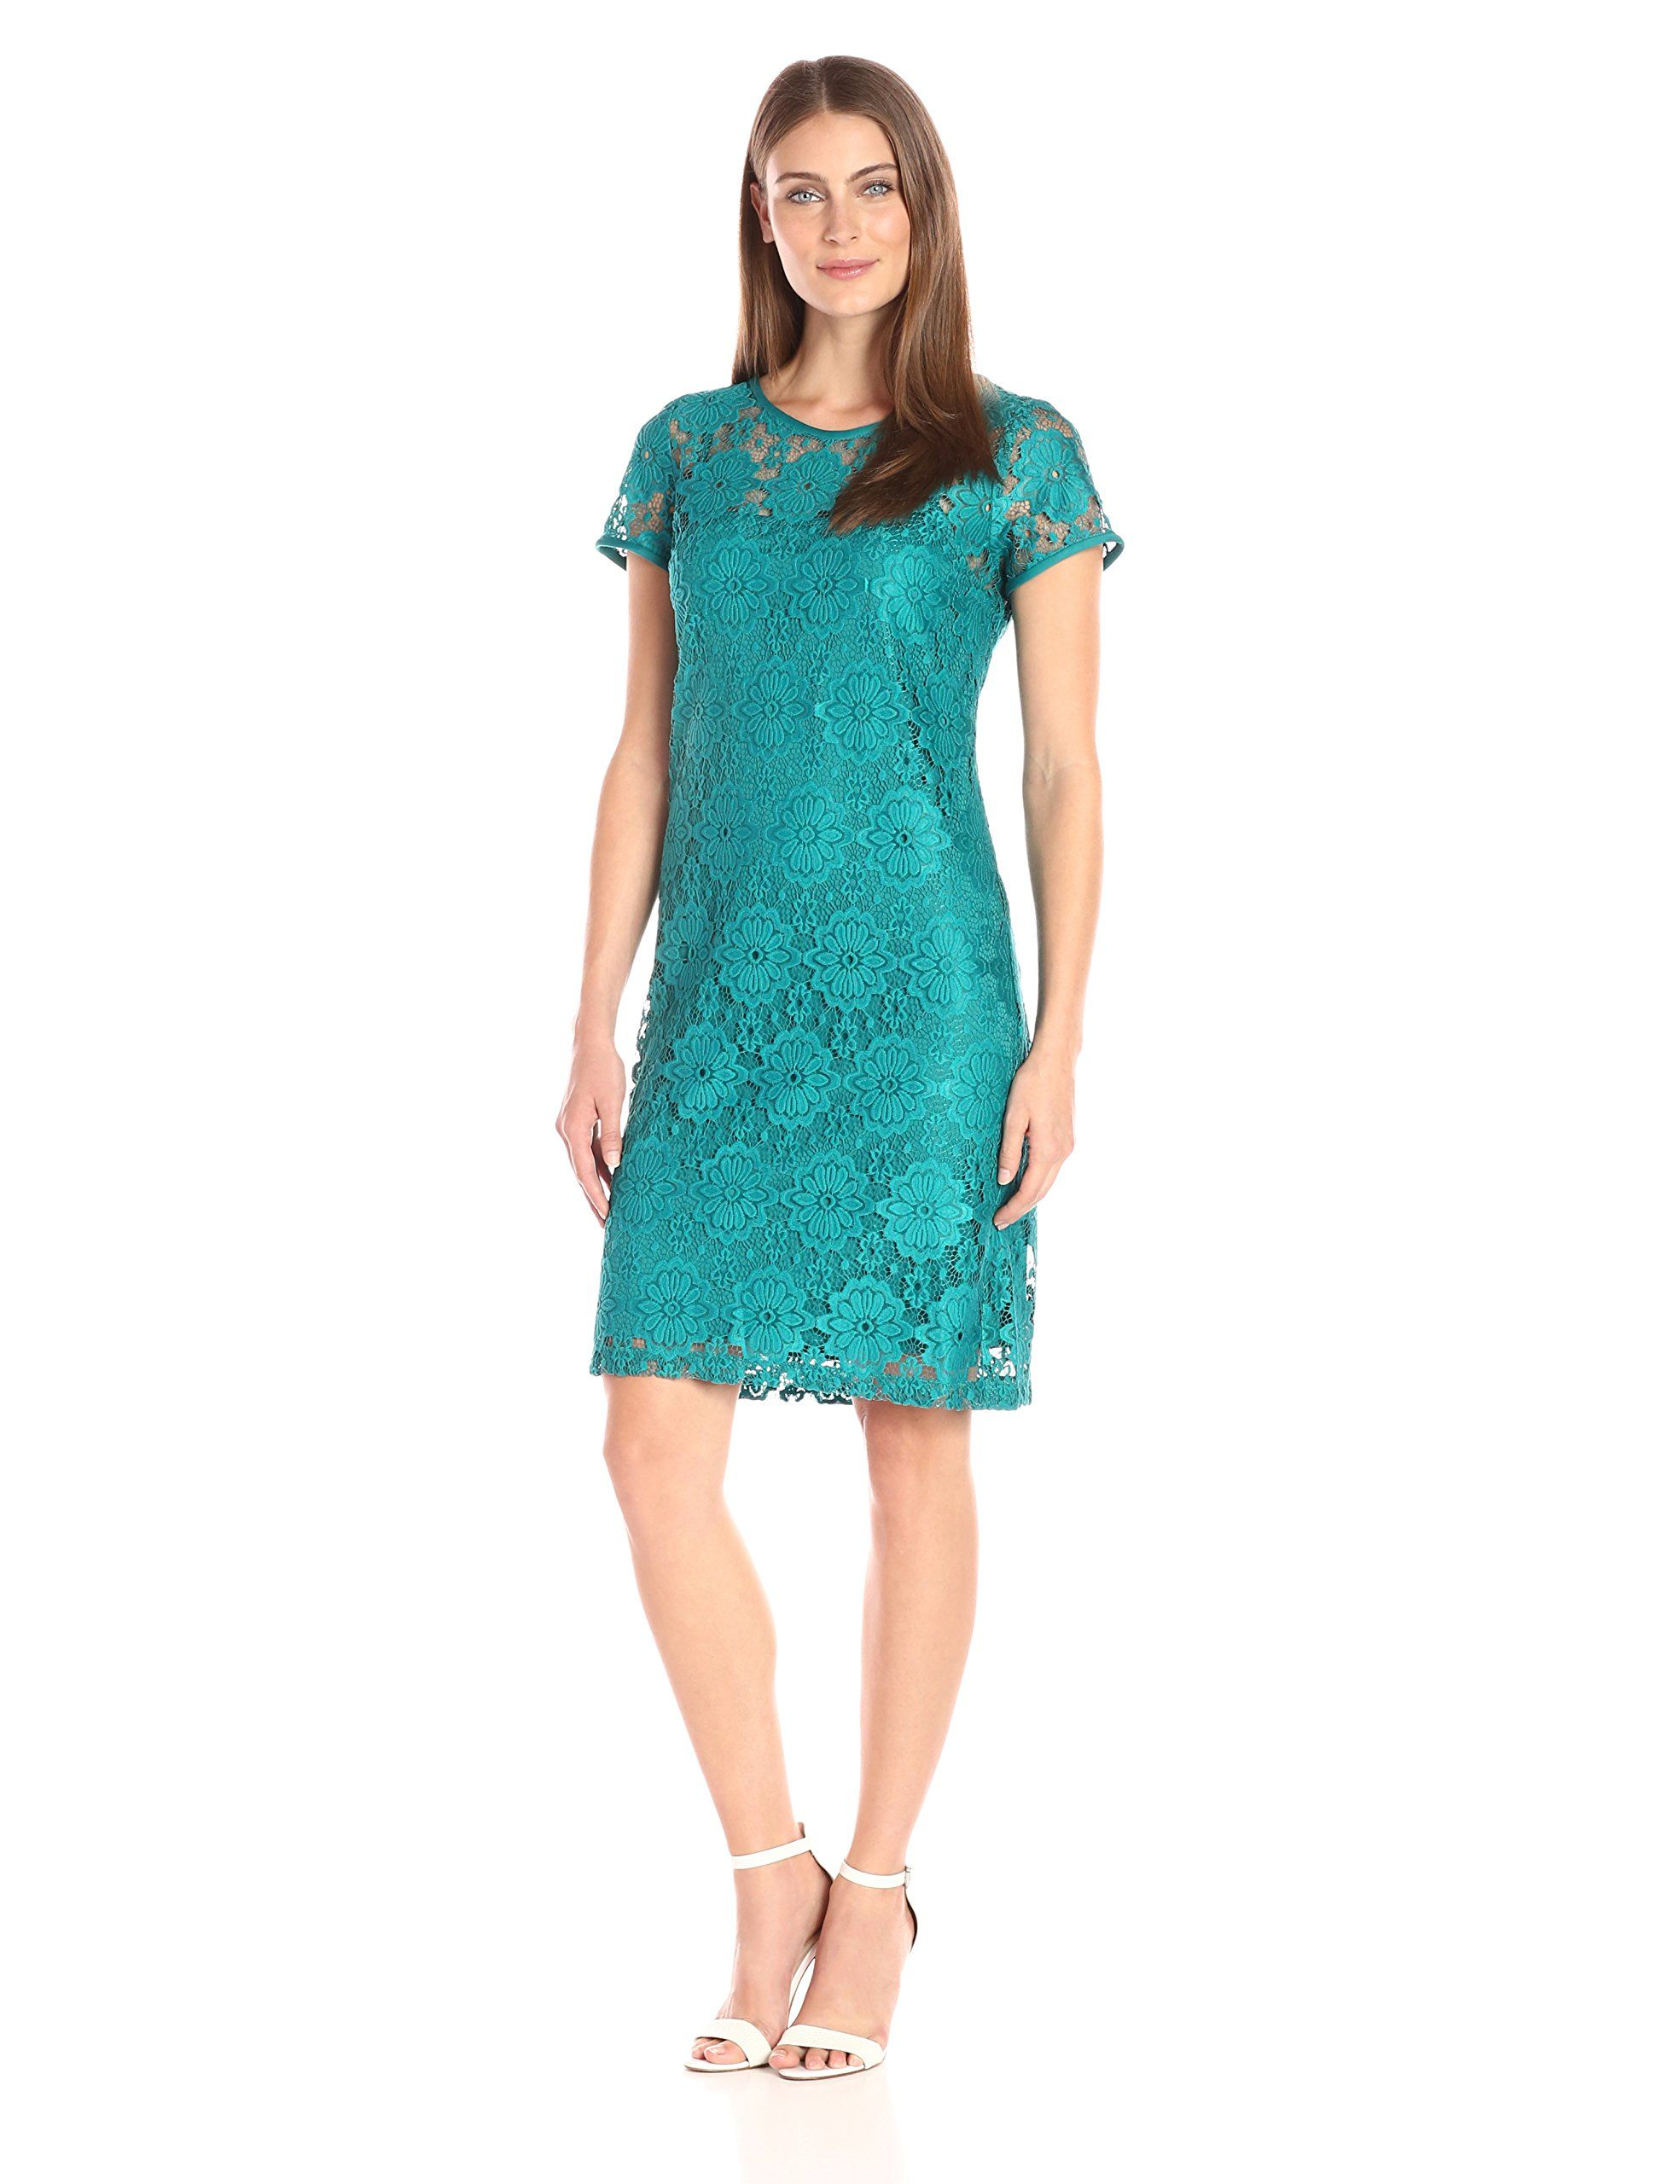 Nine West Women's Cap Slv Lace Dress W/ Nkline and Slv Edge Binding